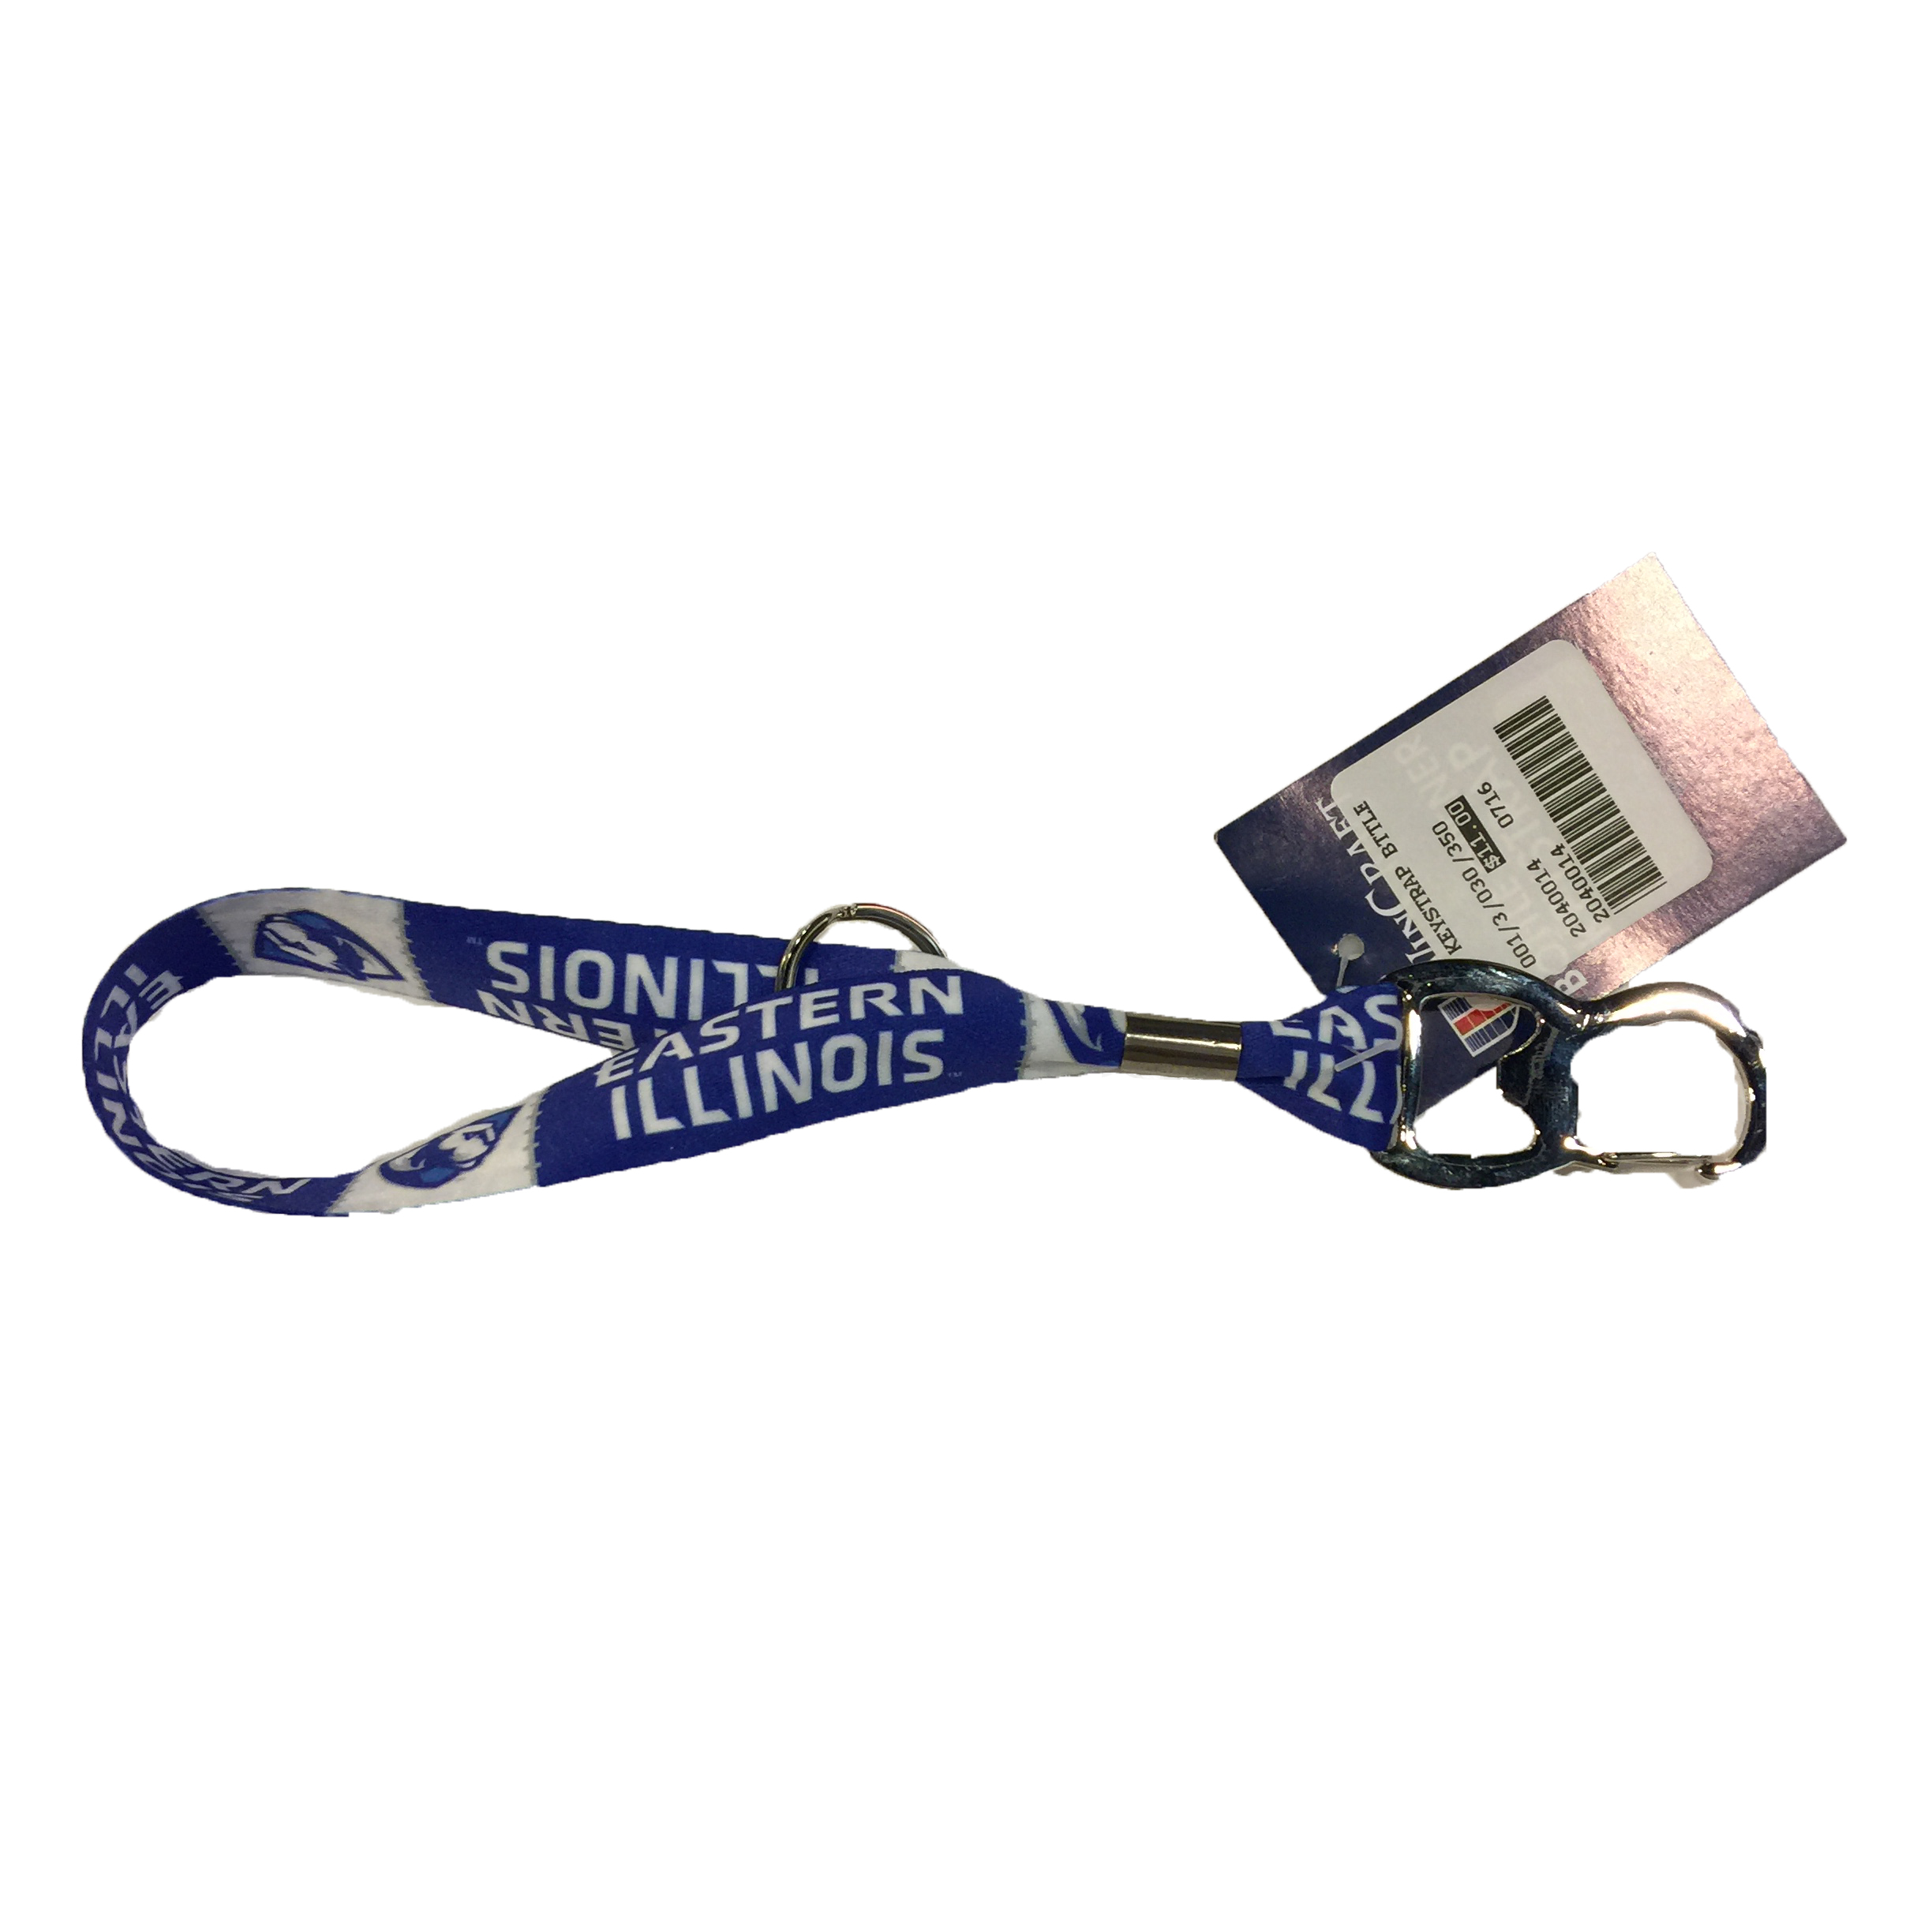 EIU Keystrap Bottle Opener